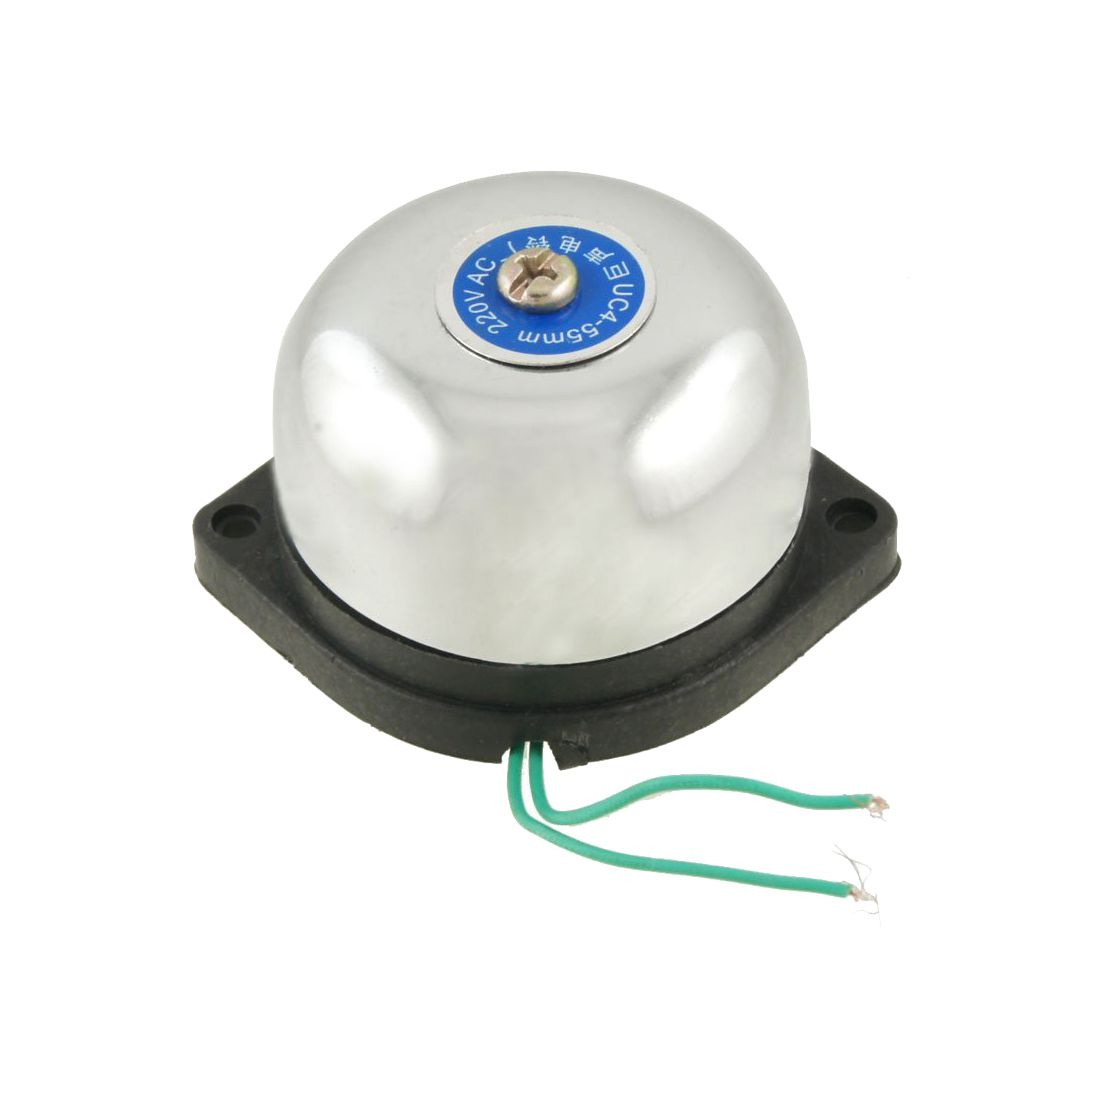 MOOL 55mm Diameter Fire Alarm Electric Gong Bell AC 220V